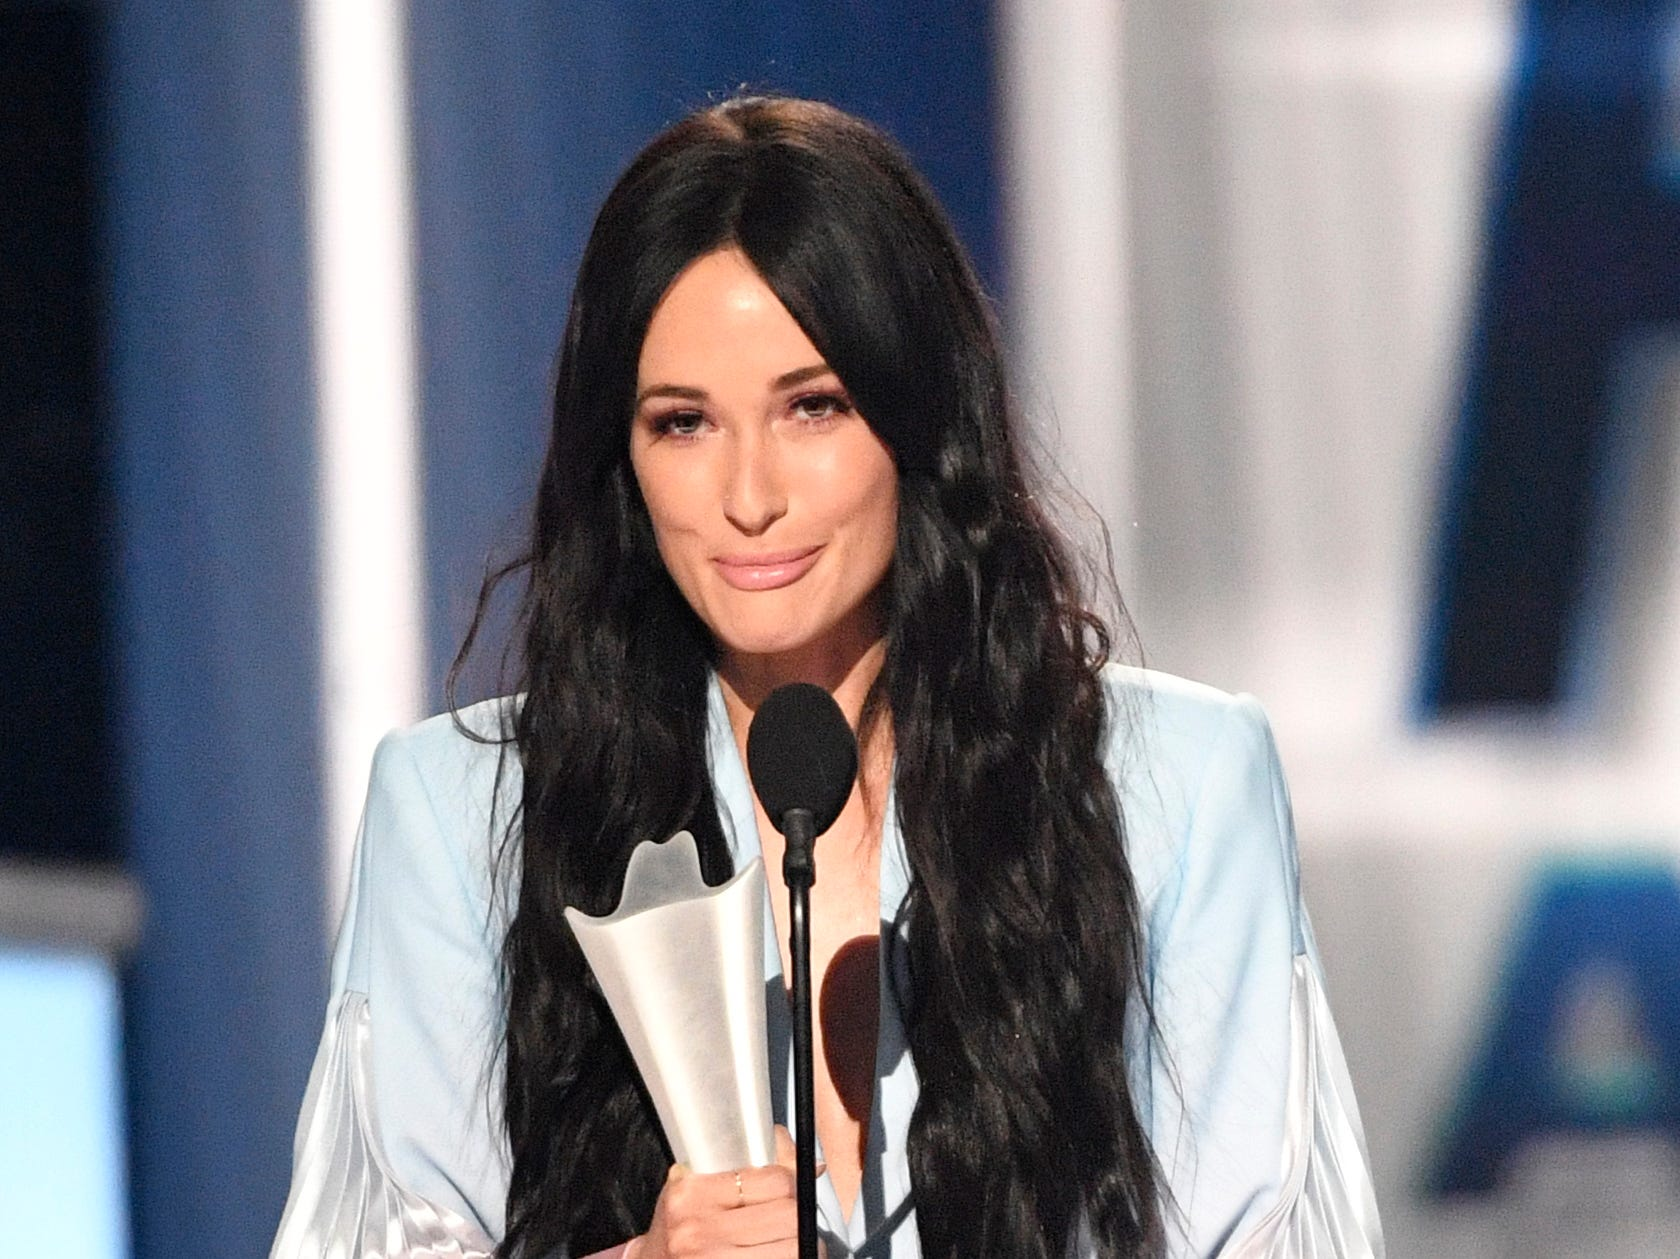 Kacey Musgraves accepts the Album of the Year award during the 54TH Academy of Country Music Awards Sunday, April 7, 2019, in Las Vegas, Nev.